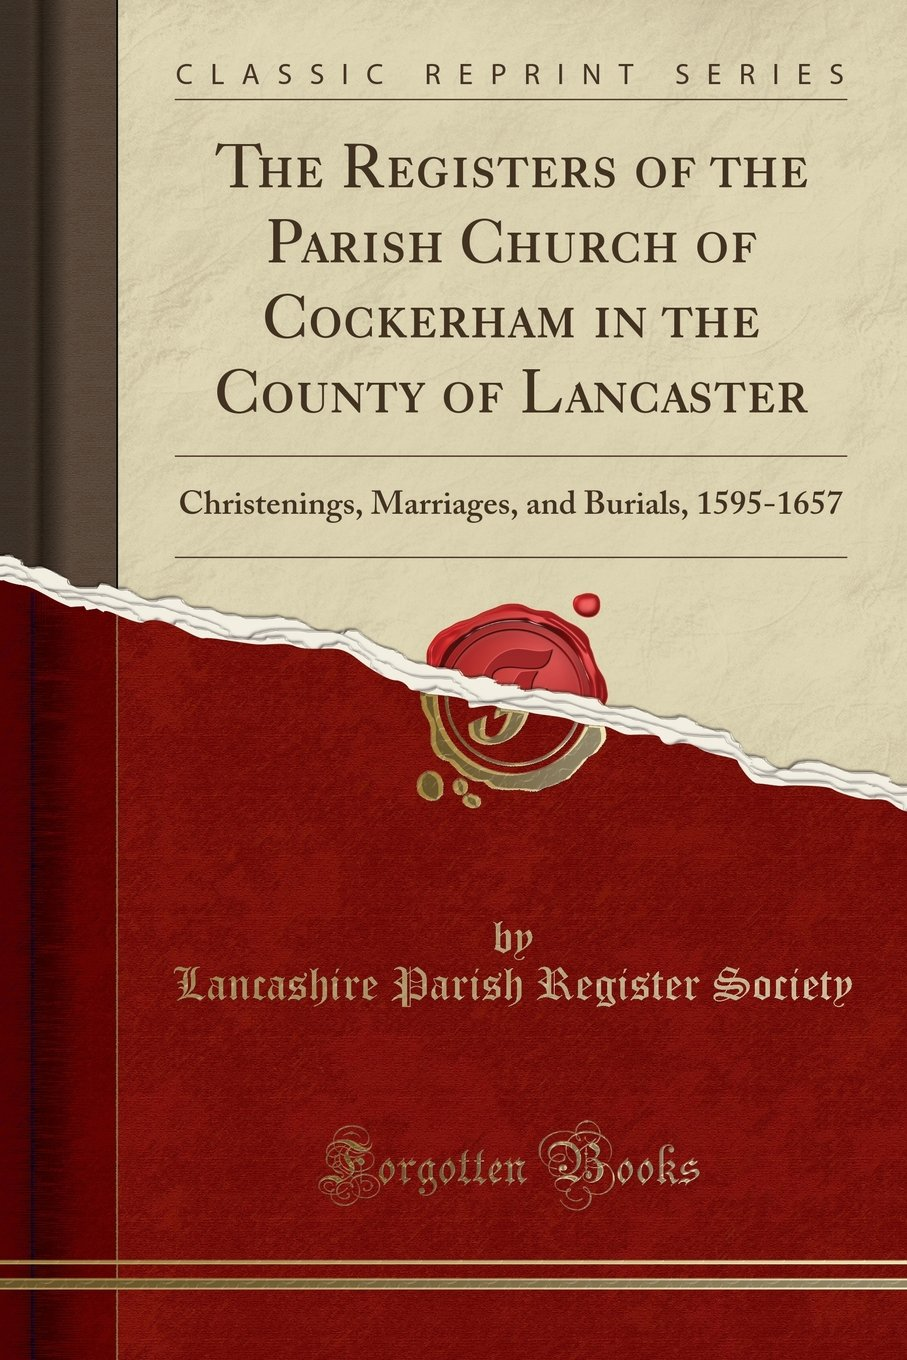 Download The Registers of the Parish Church of Cockerham in the County of Lancaster: Christenings, Marriages, and Burials, 1595-1657 (Classic Reprint) PDF